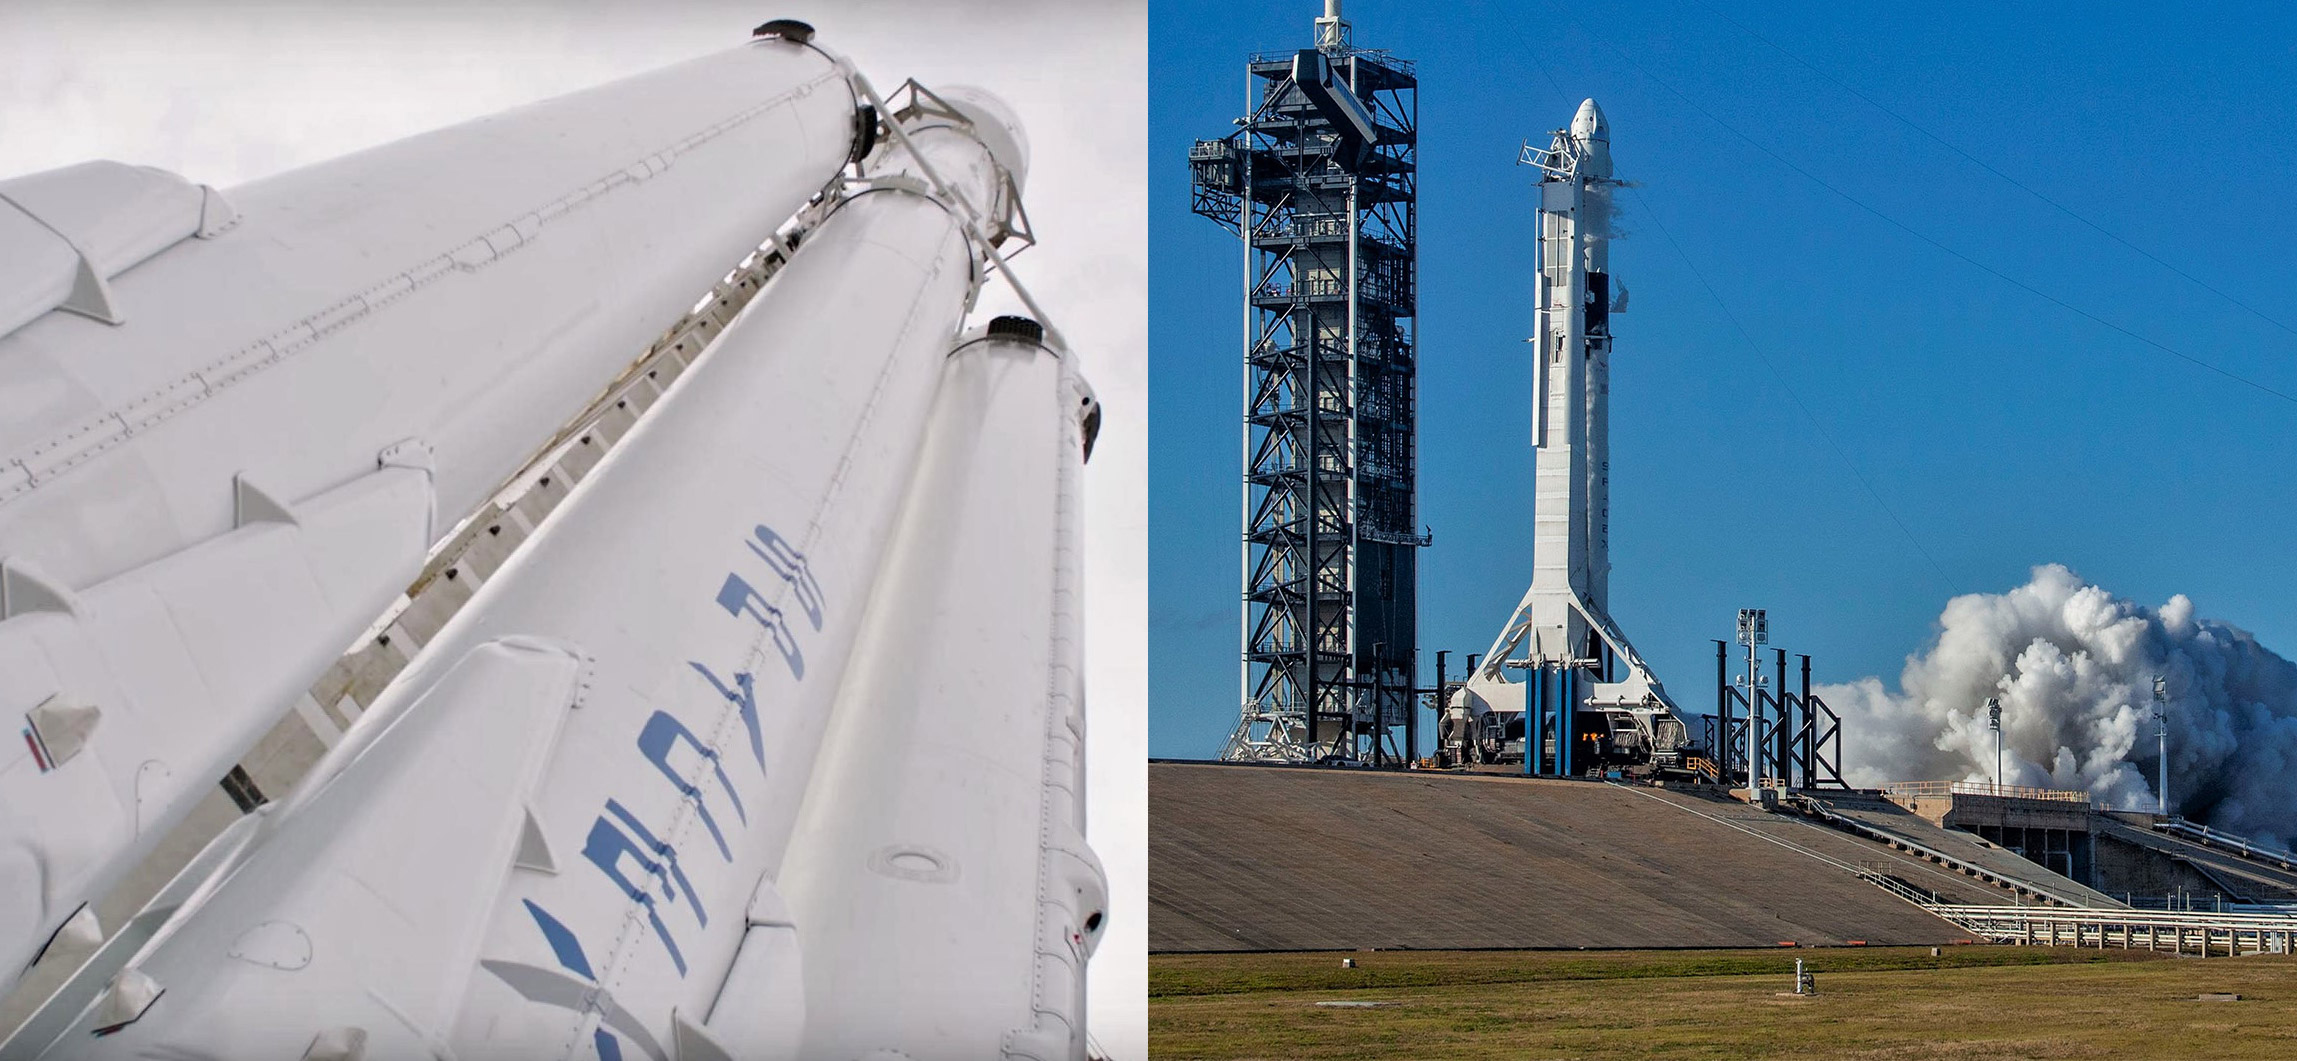 spacex 39 s crew dragon launch moves to march risking falcon heavy delays. Black Bedroom Furniture Sets. Home Design Ideas